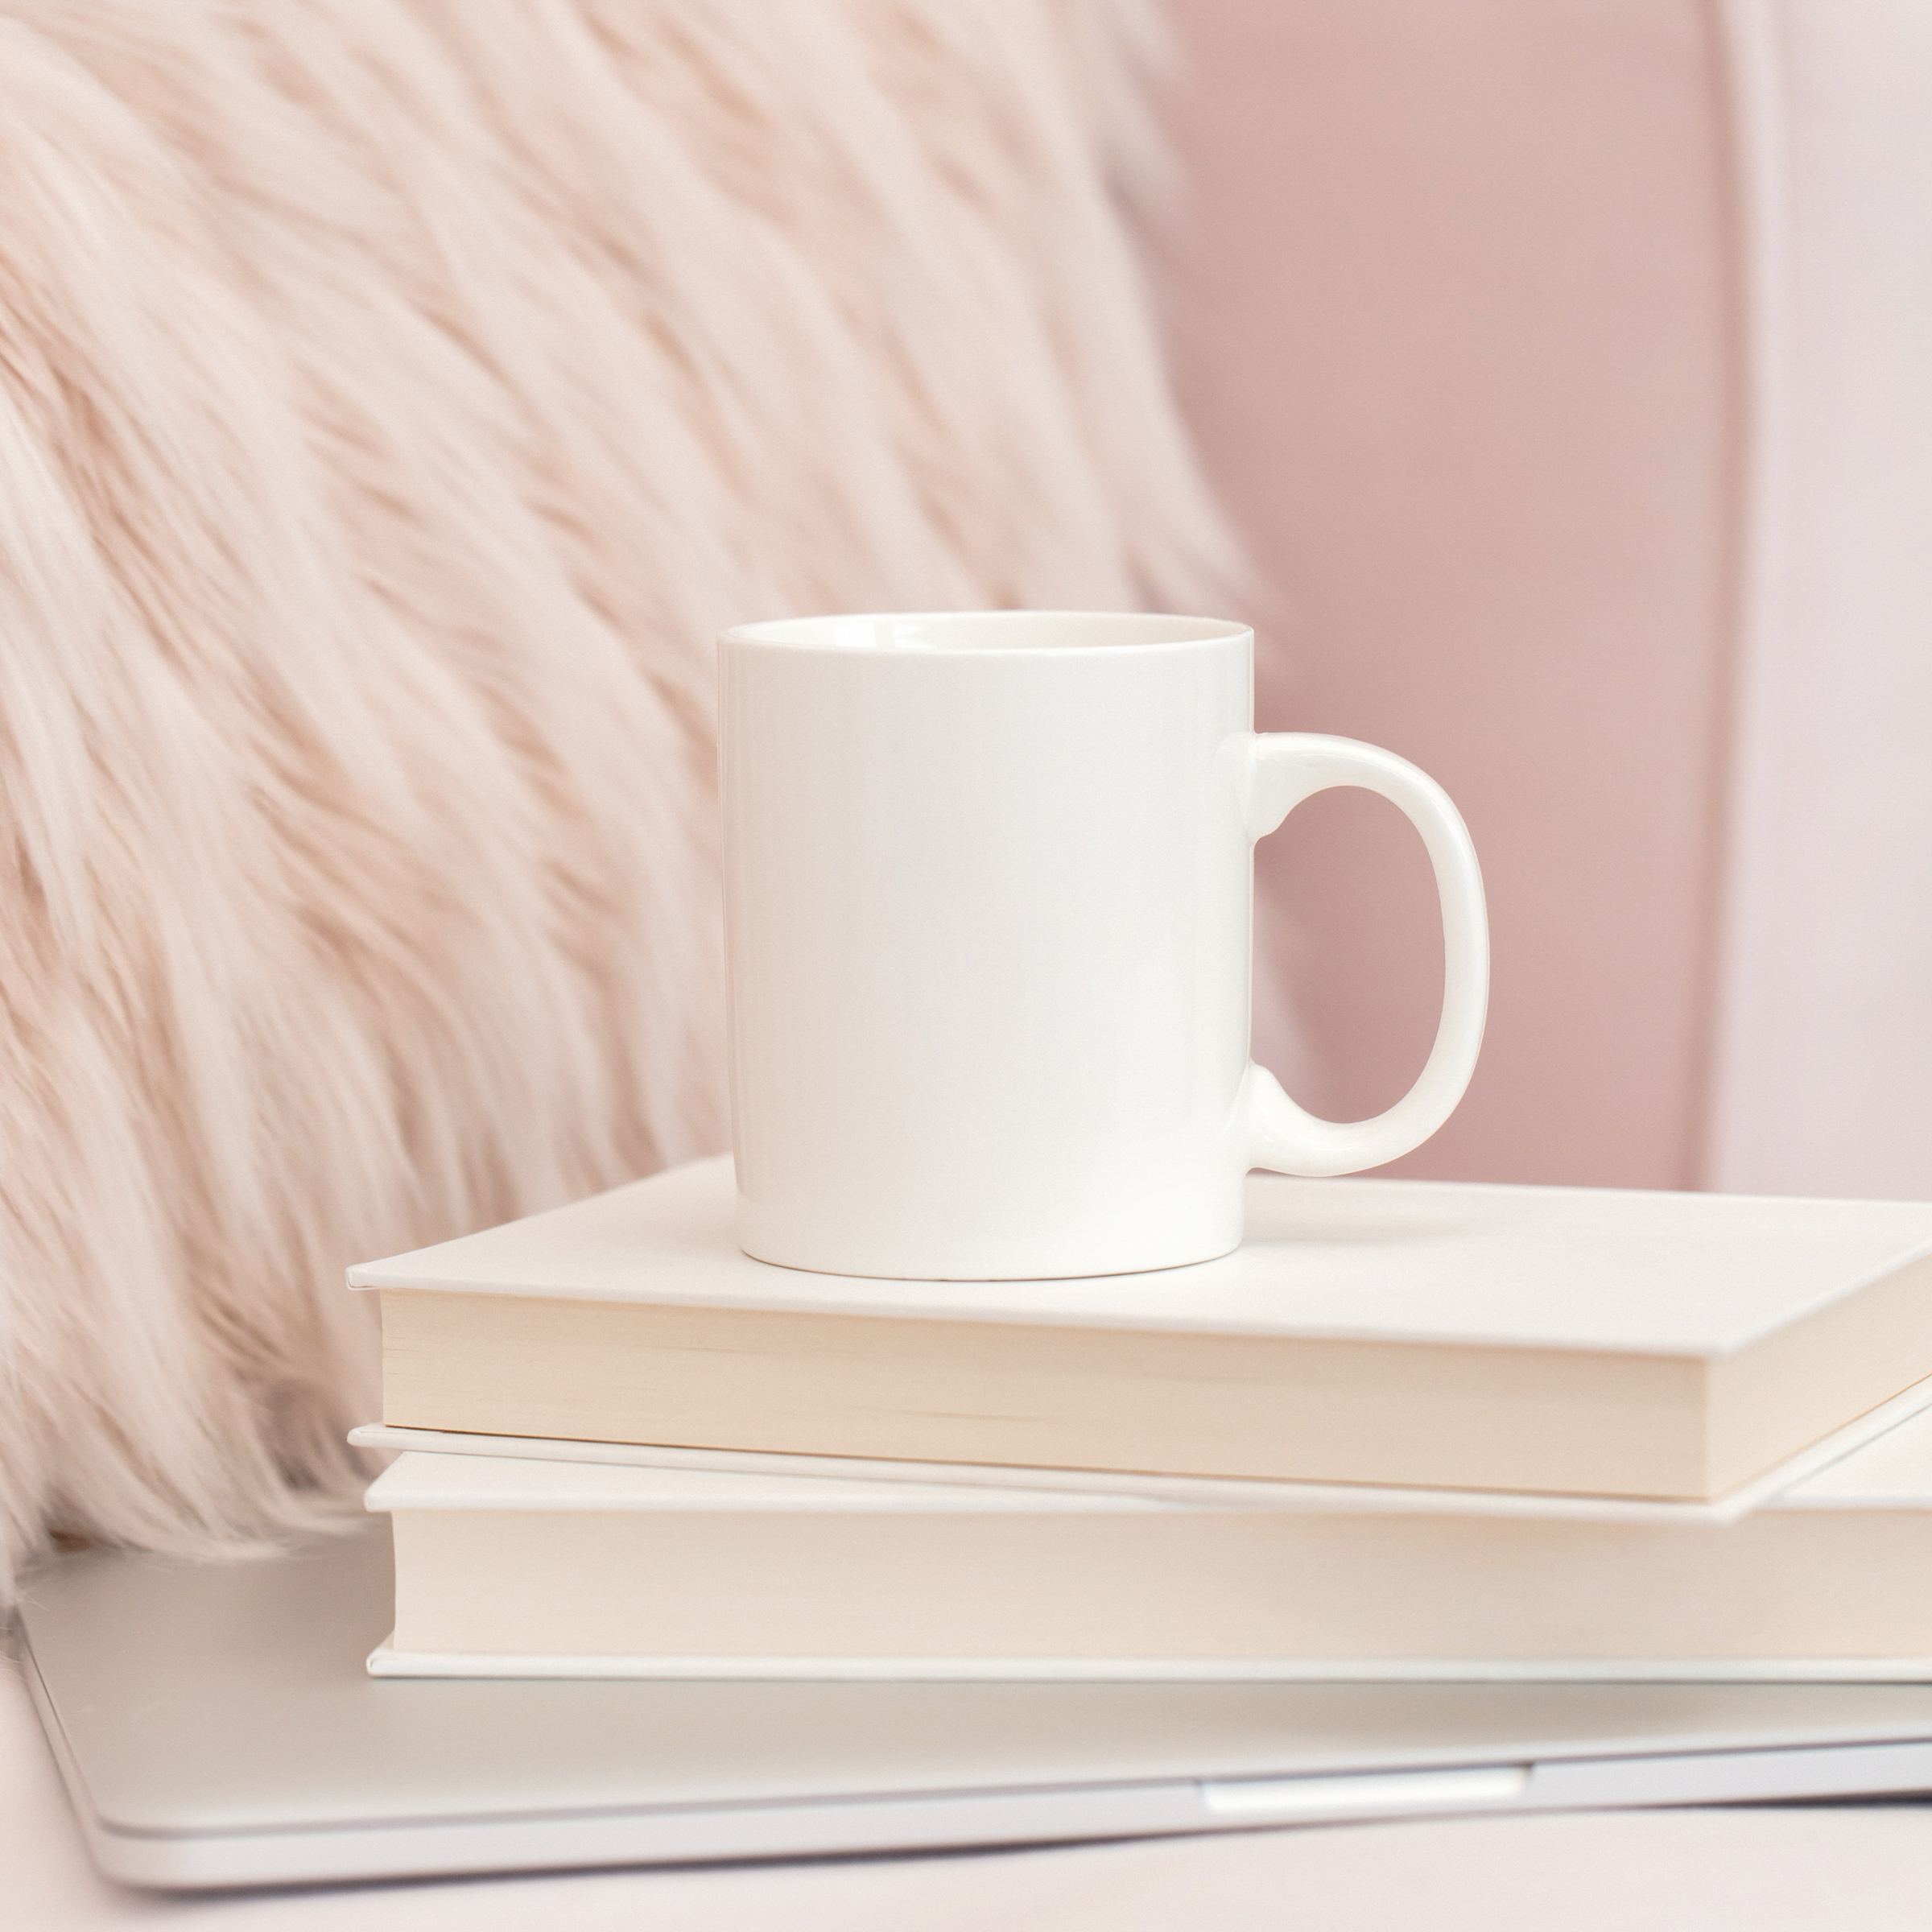 haute-stock-photography-blush-bedroom-collection-final-2.jpg